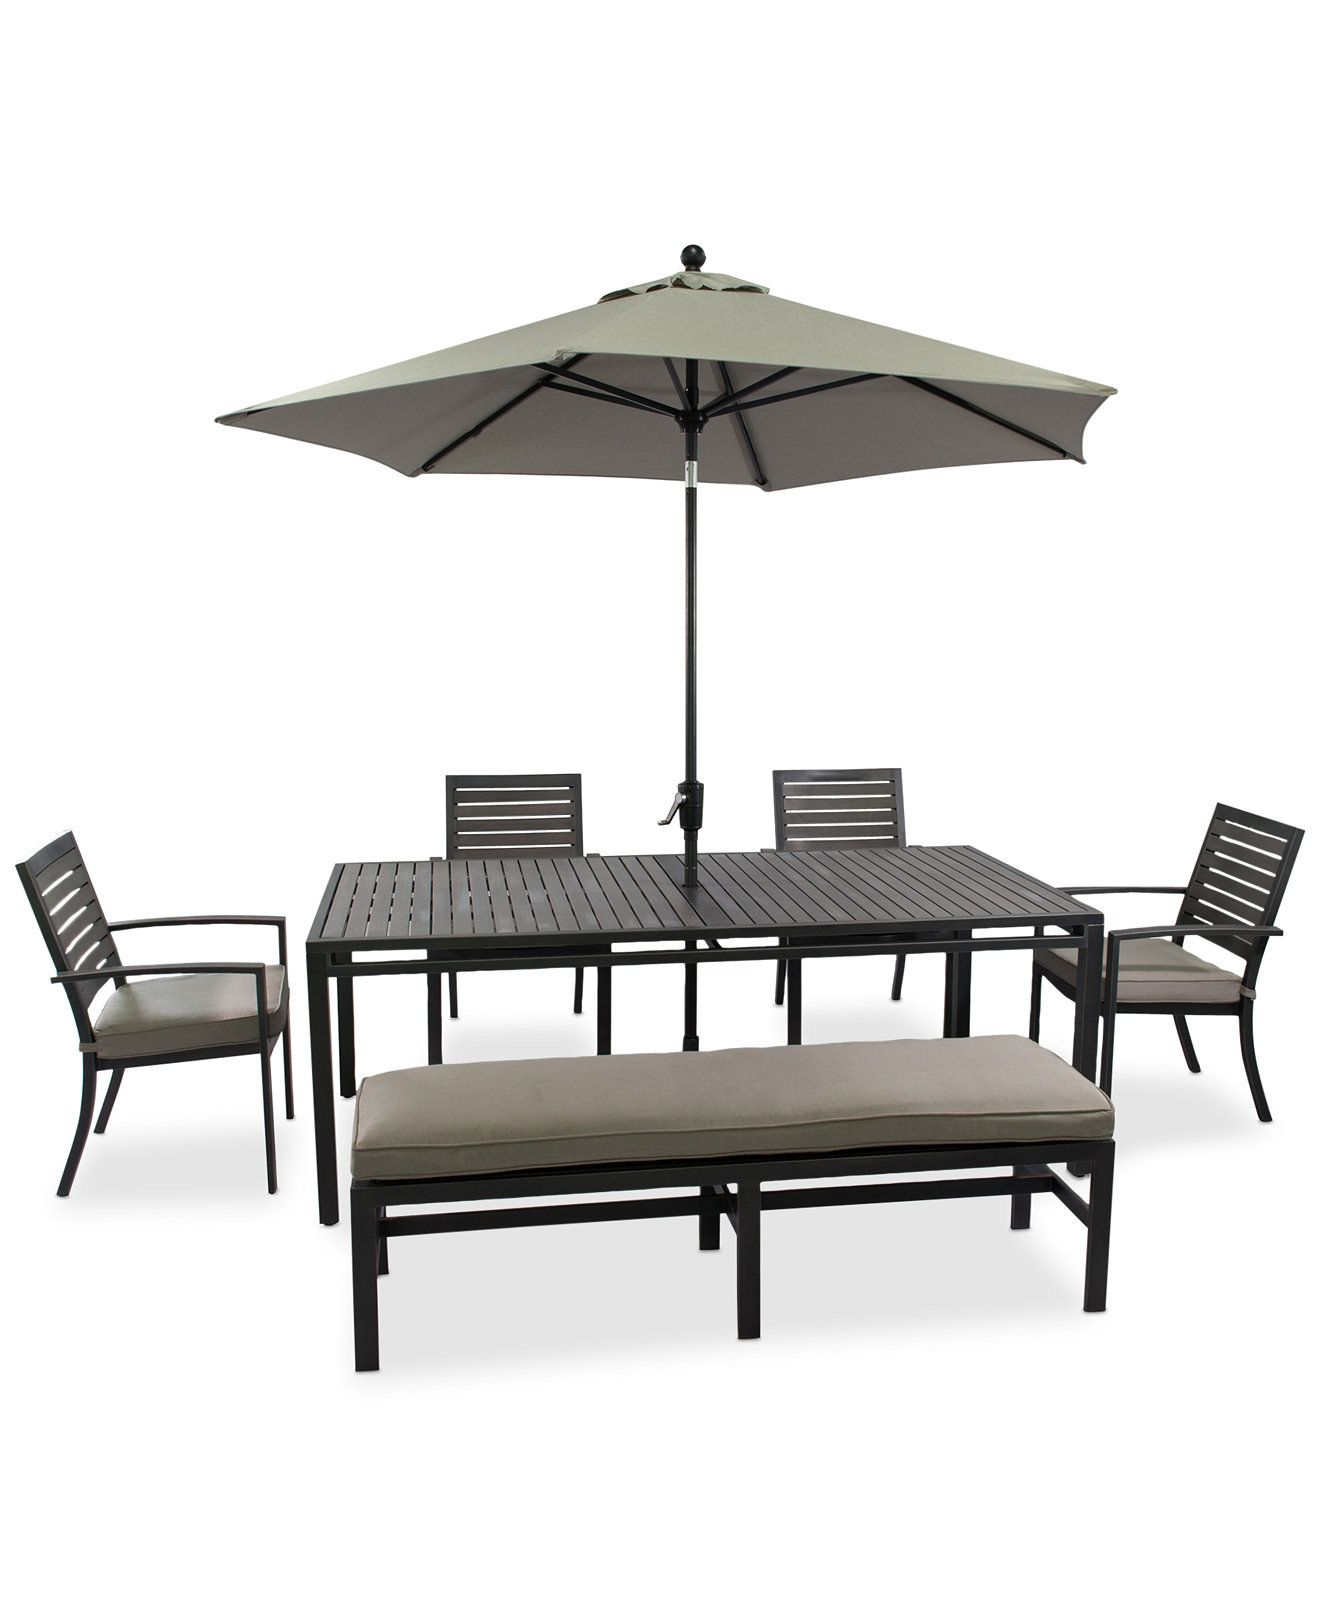 "CLOSEOUT Marlough Outdoor Aluminum 6 Pc Dining Set 84"" x 42"